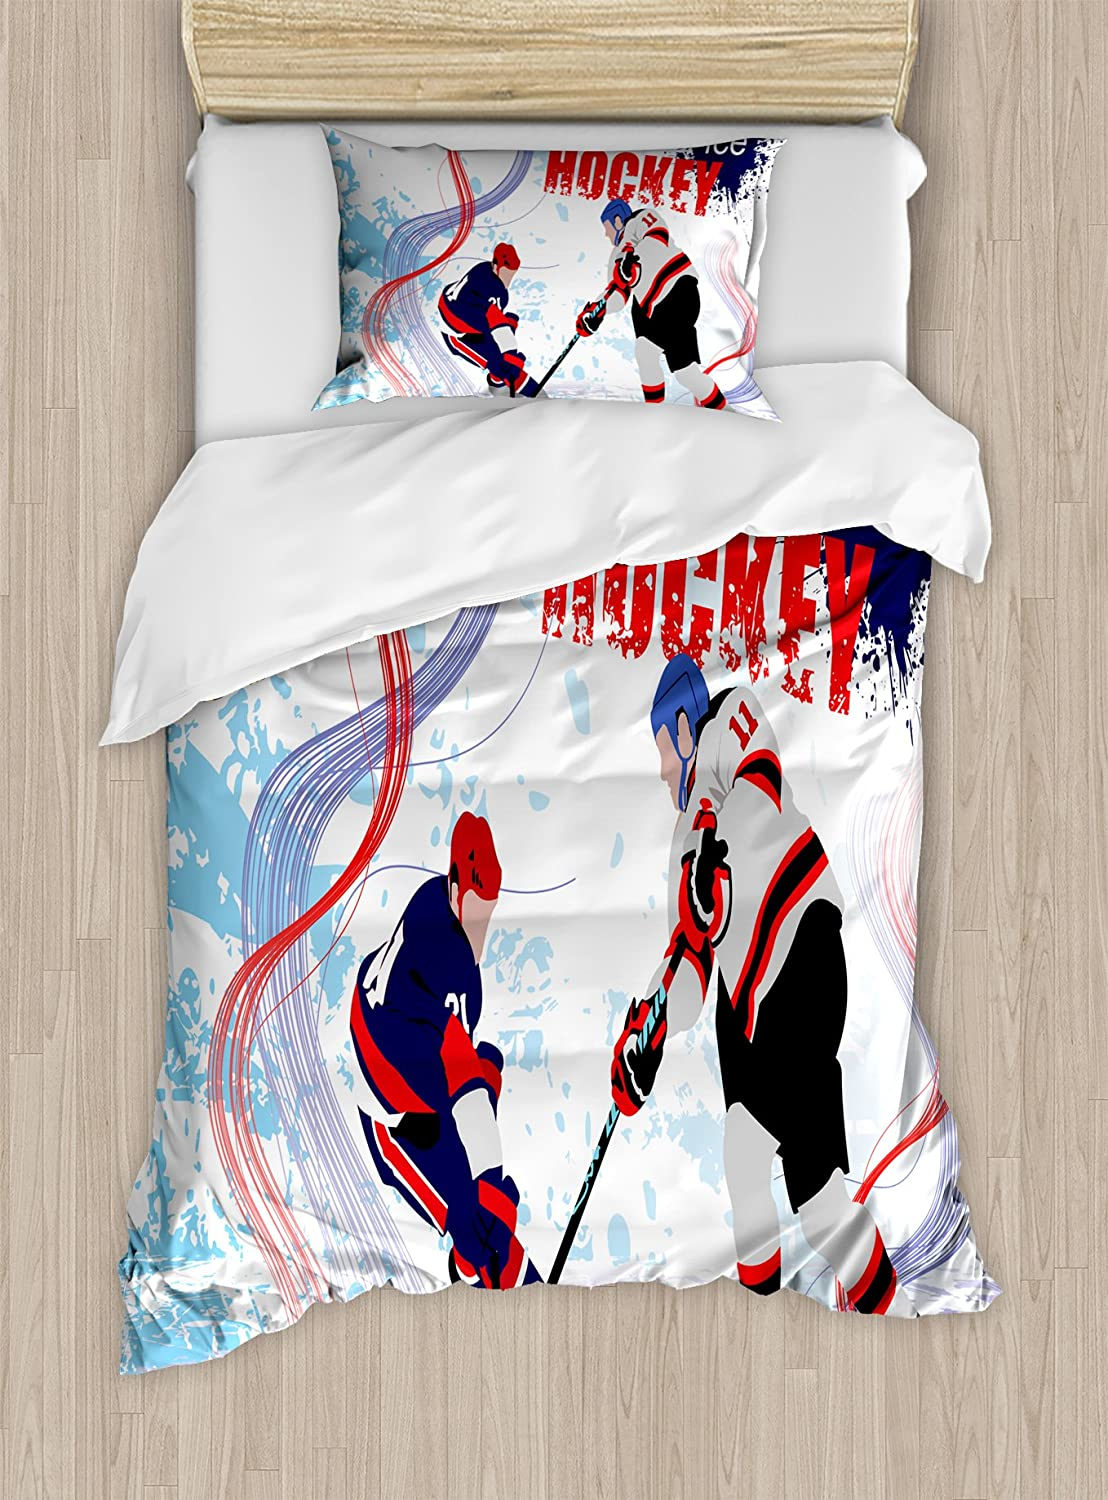 Ambesonne Hockey Duvet Cover Set, 2 Ice Hockey Players in Cartoon Style on Grunge Abstract Skating Rink Backdrop, Decorative 2 Piece Bedding Set with 1 Pillow Sham, Twin Size, Blue Red